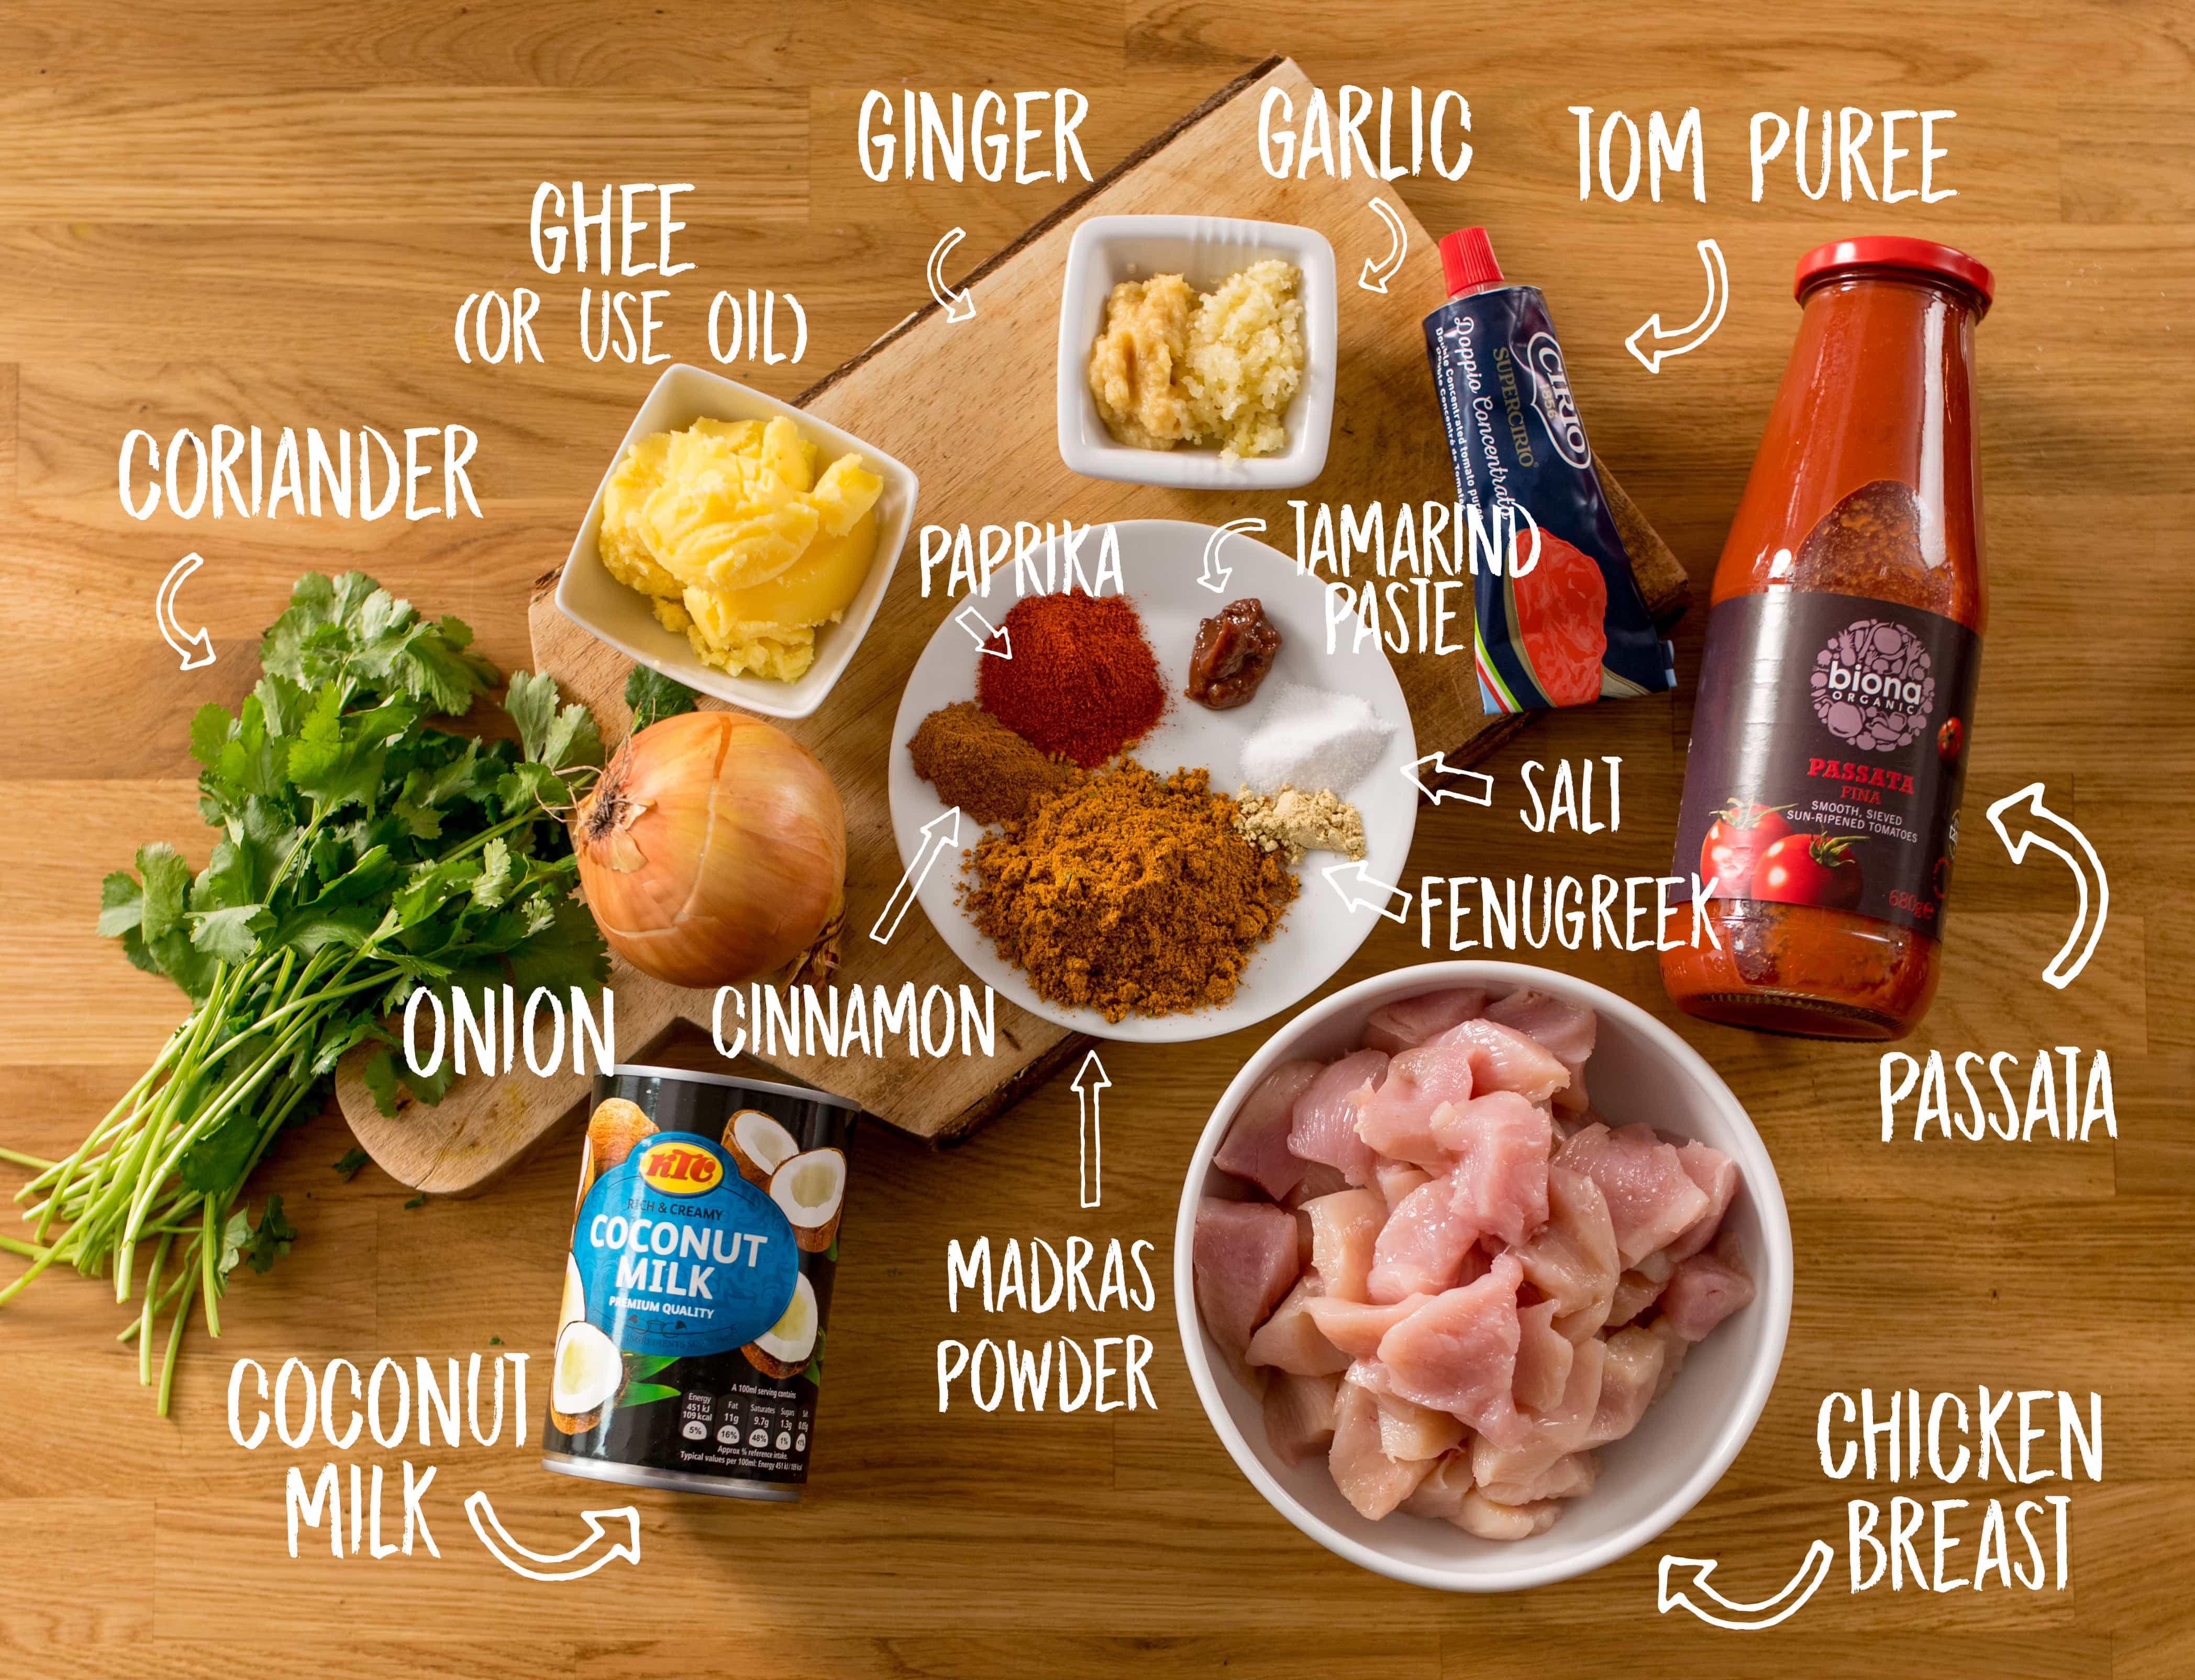 Ingredients for Chicken Madras on a wooden table